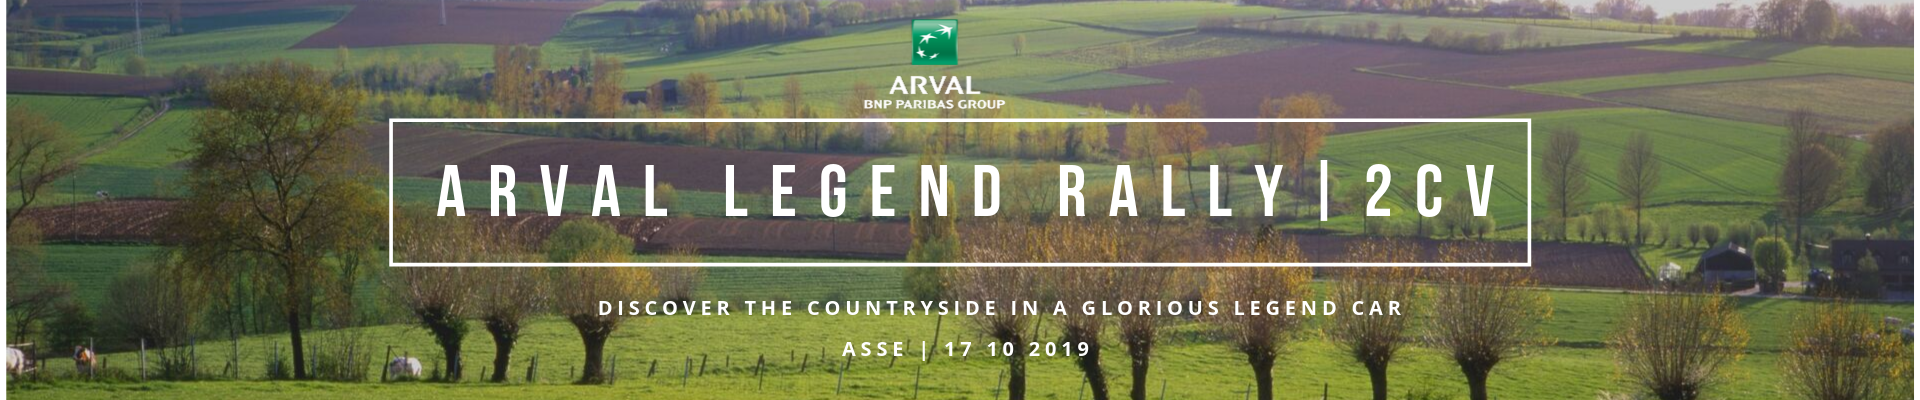 'Arval Legend Rally' | 2CV'